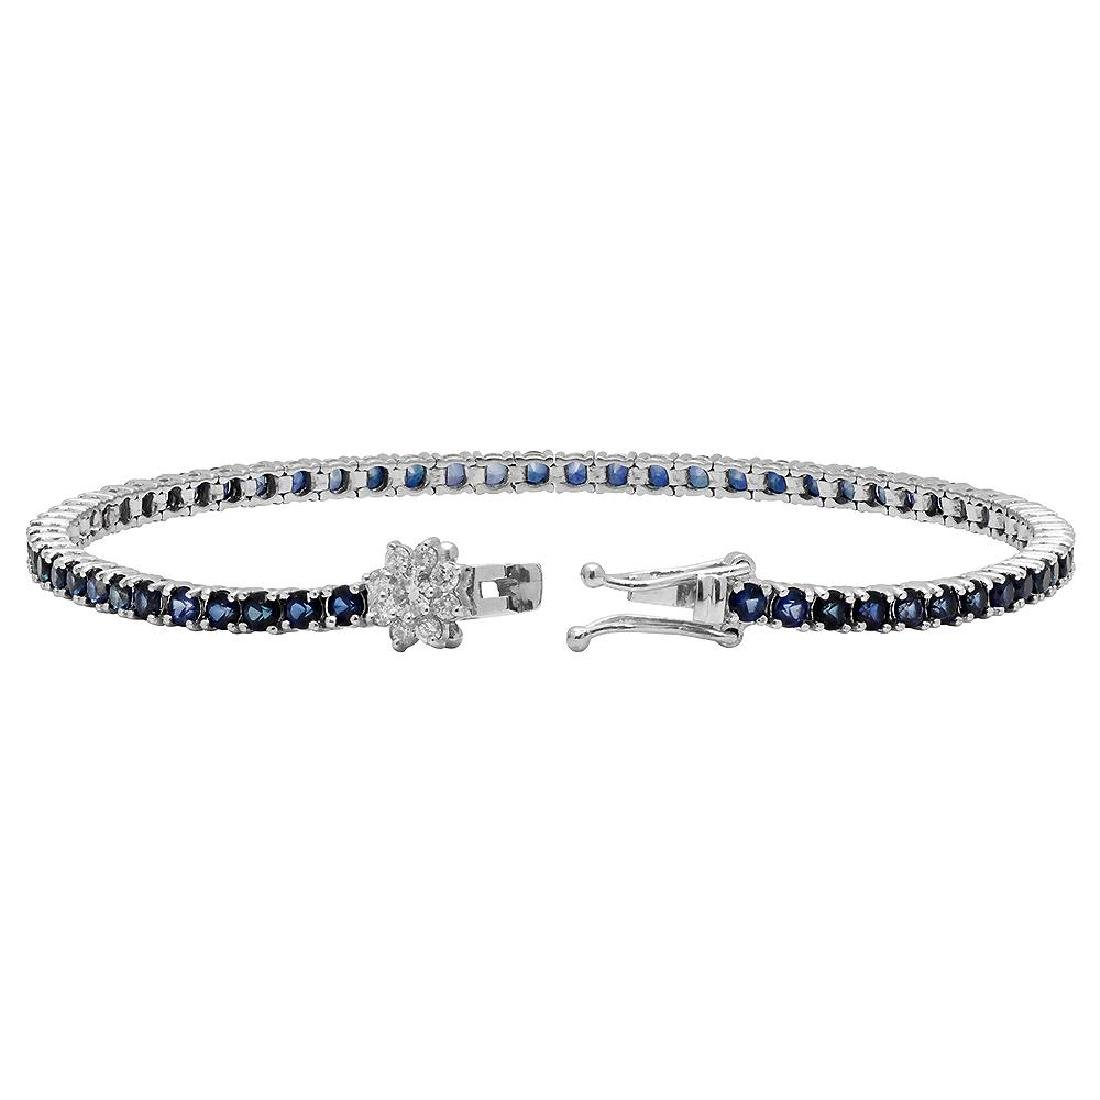 14k White Gold 5.10ct Sapphire 0.42ct Diamond Bracelet - 2